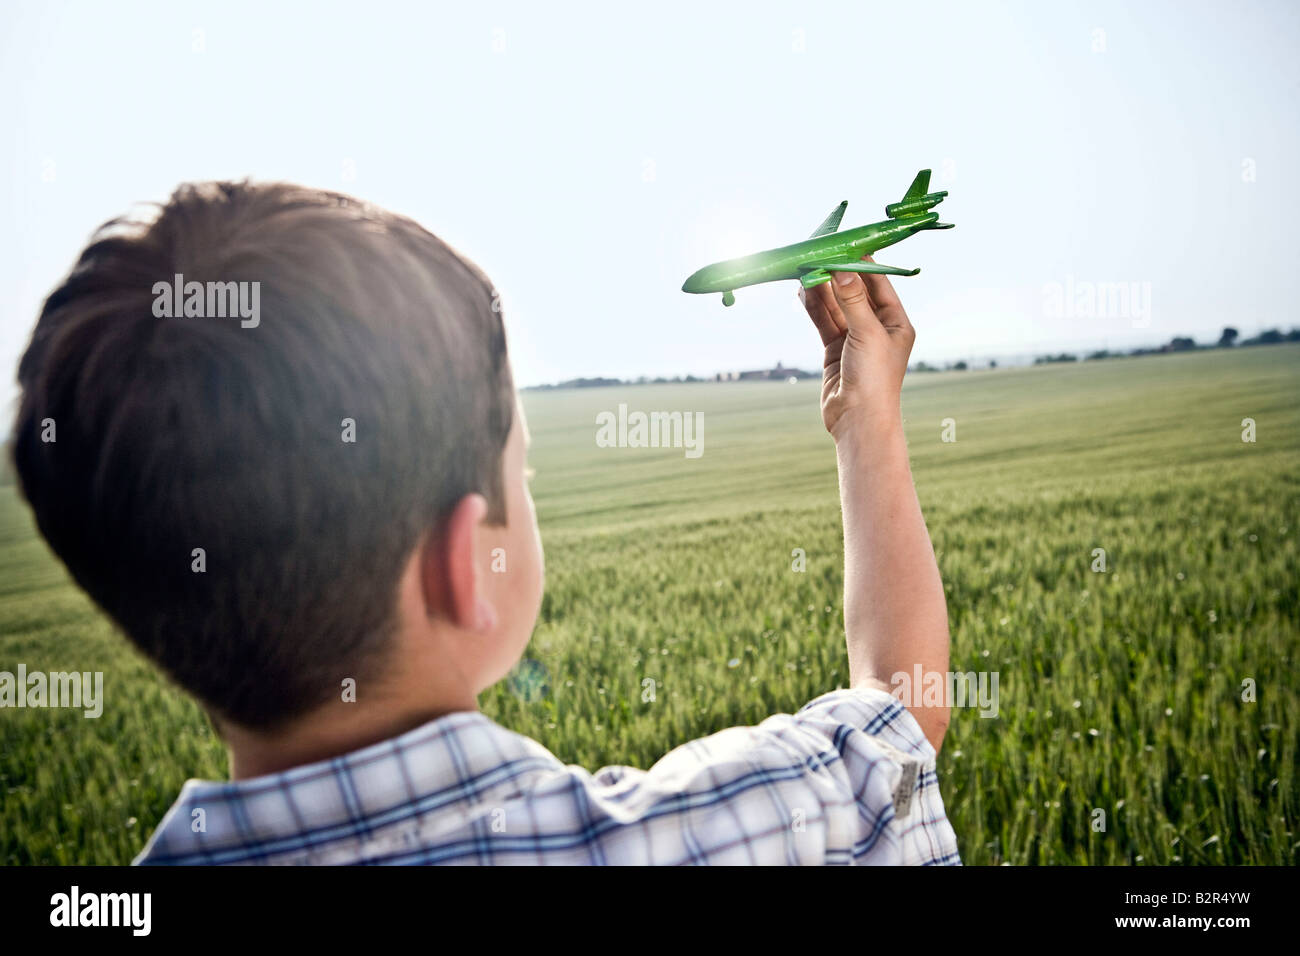 Boy Playing with toy plane Photo Stock